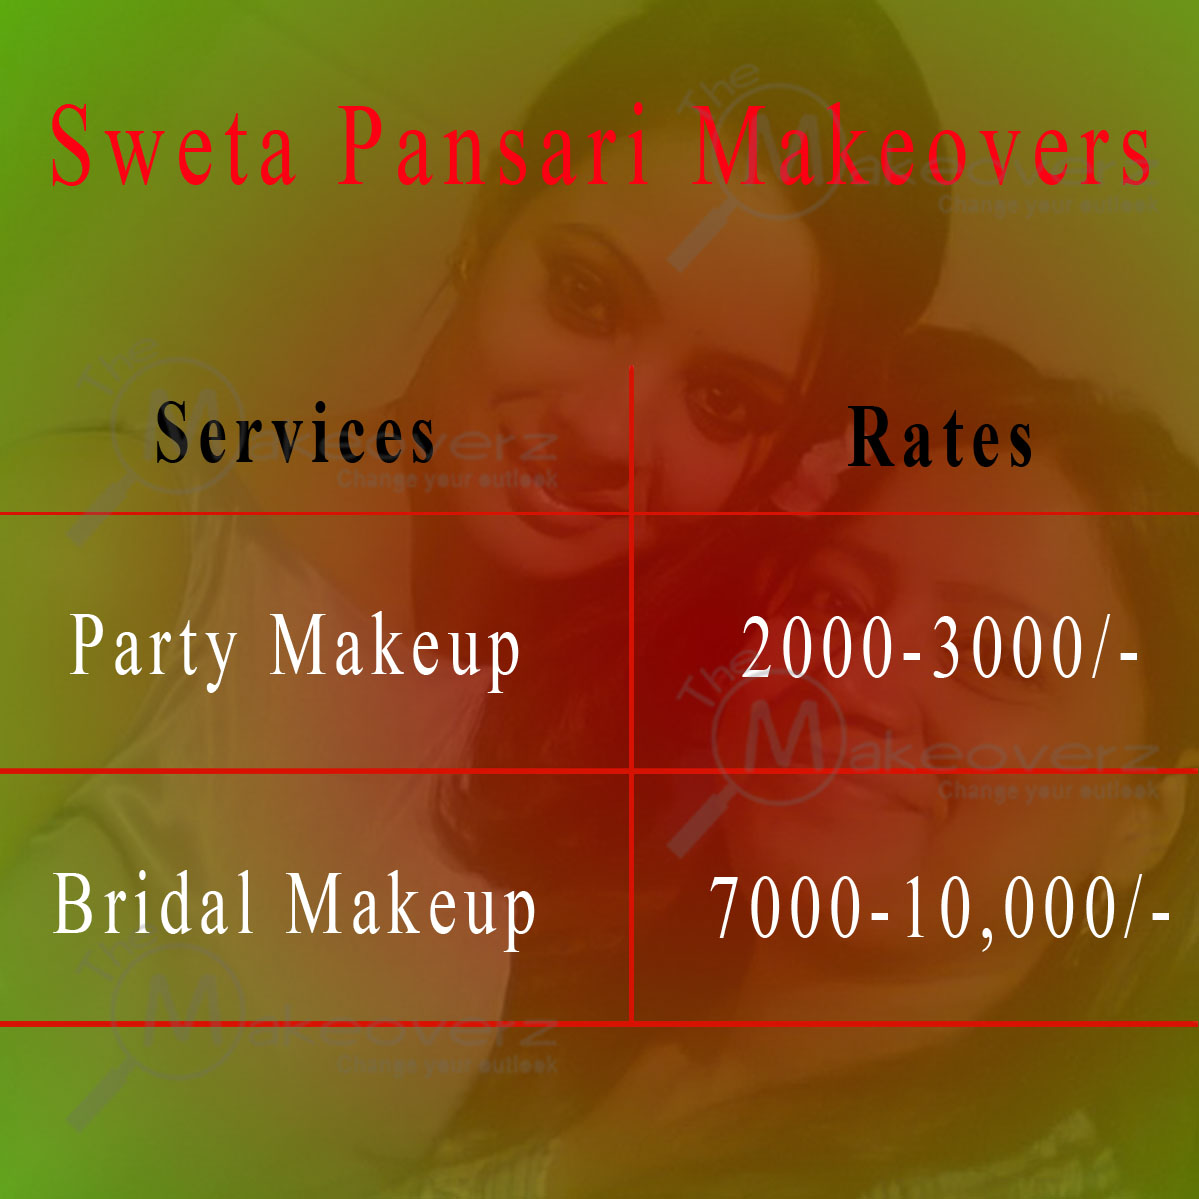 Sweta Pansari Makeovers - Sector 14, Gurgaon